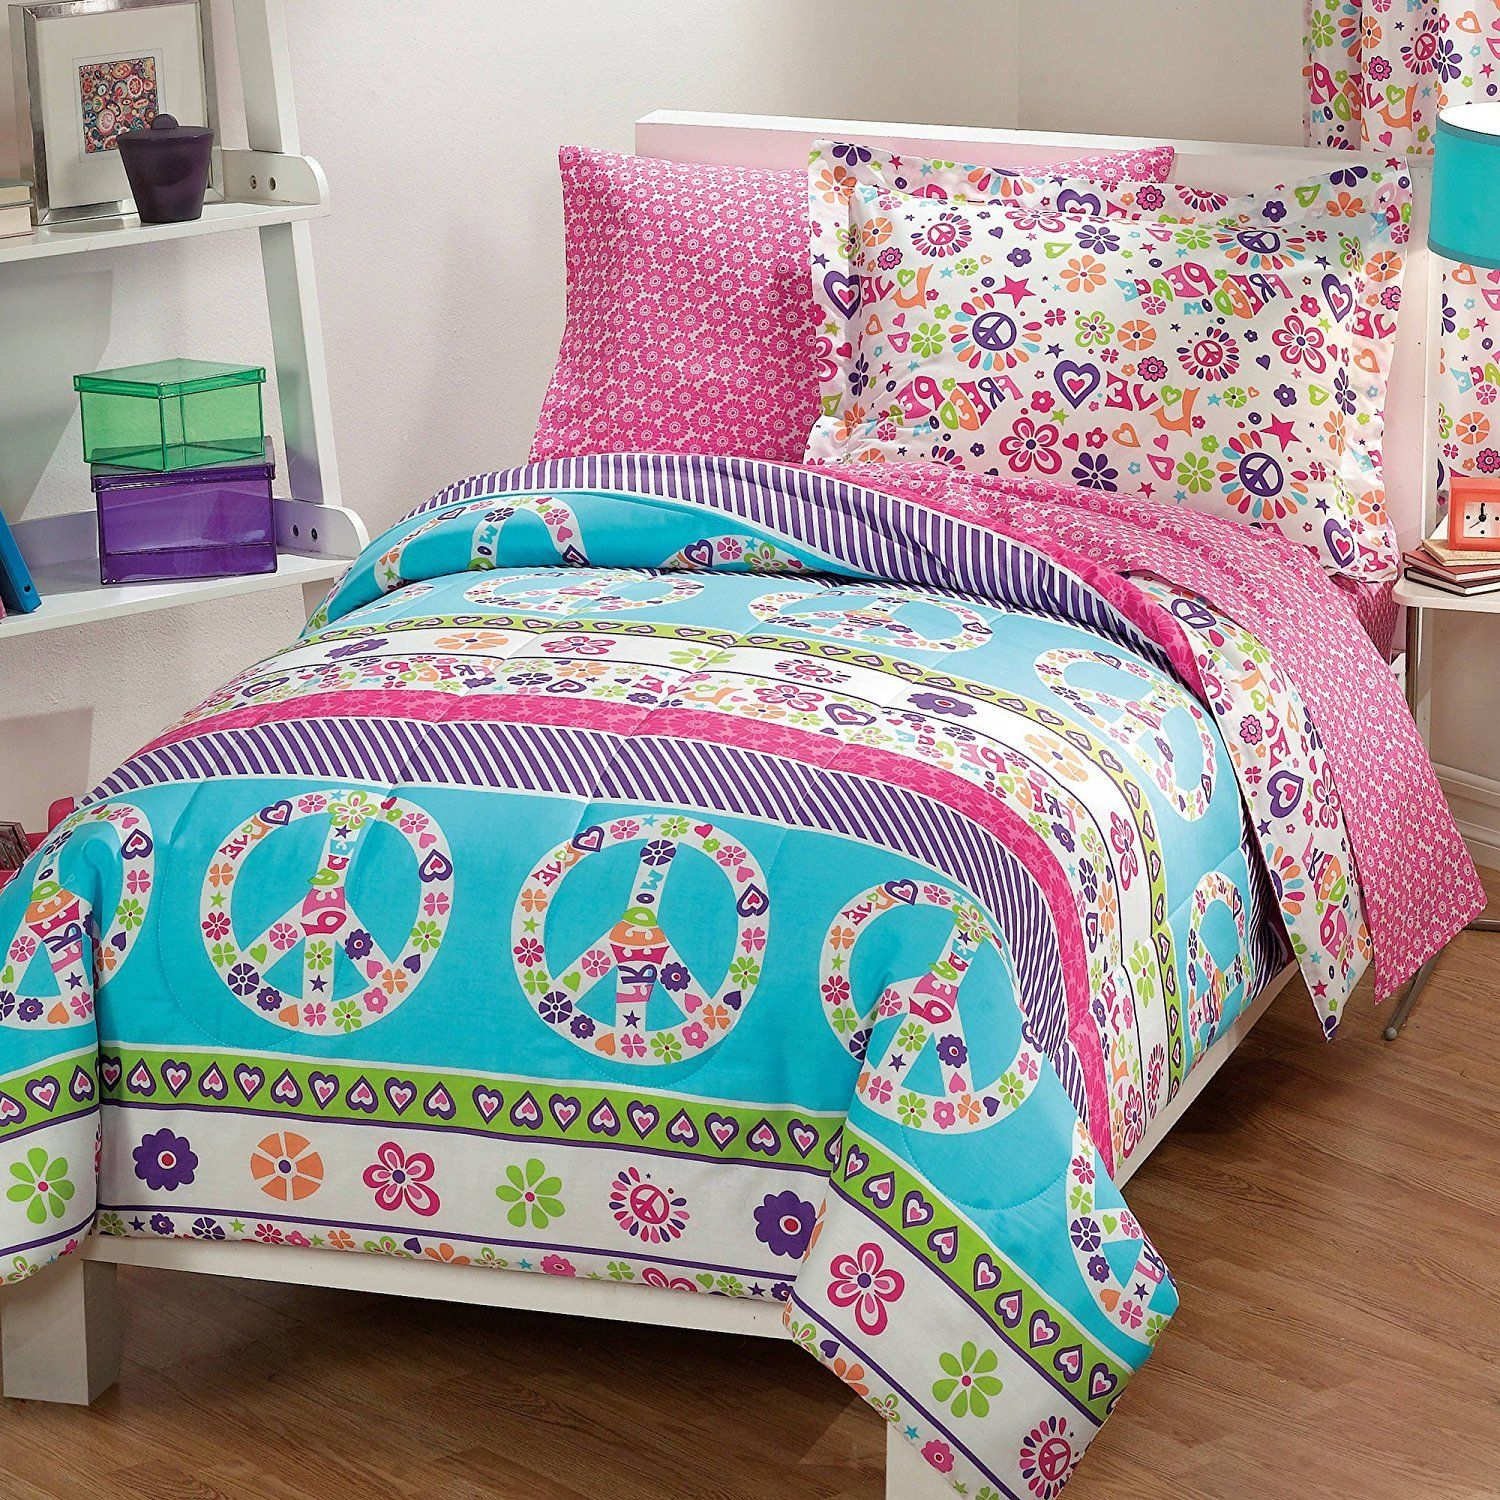 set comforter bedroom and purple with net floral pink white source helena pattern l green